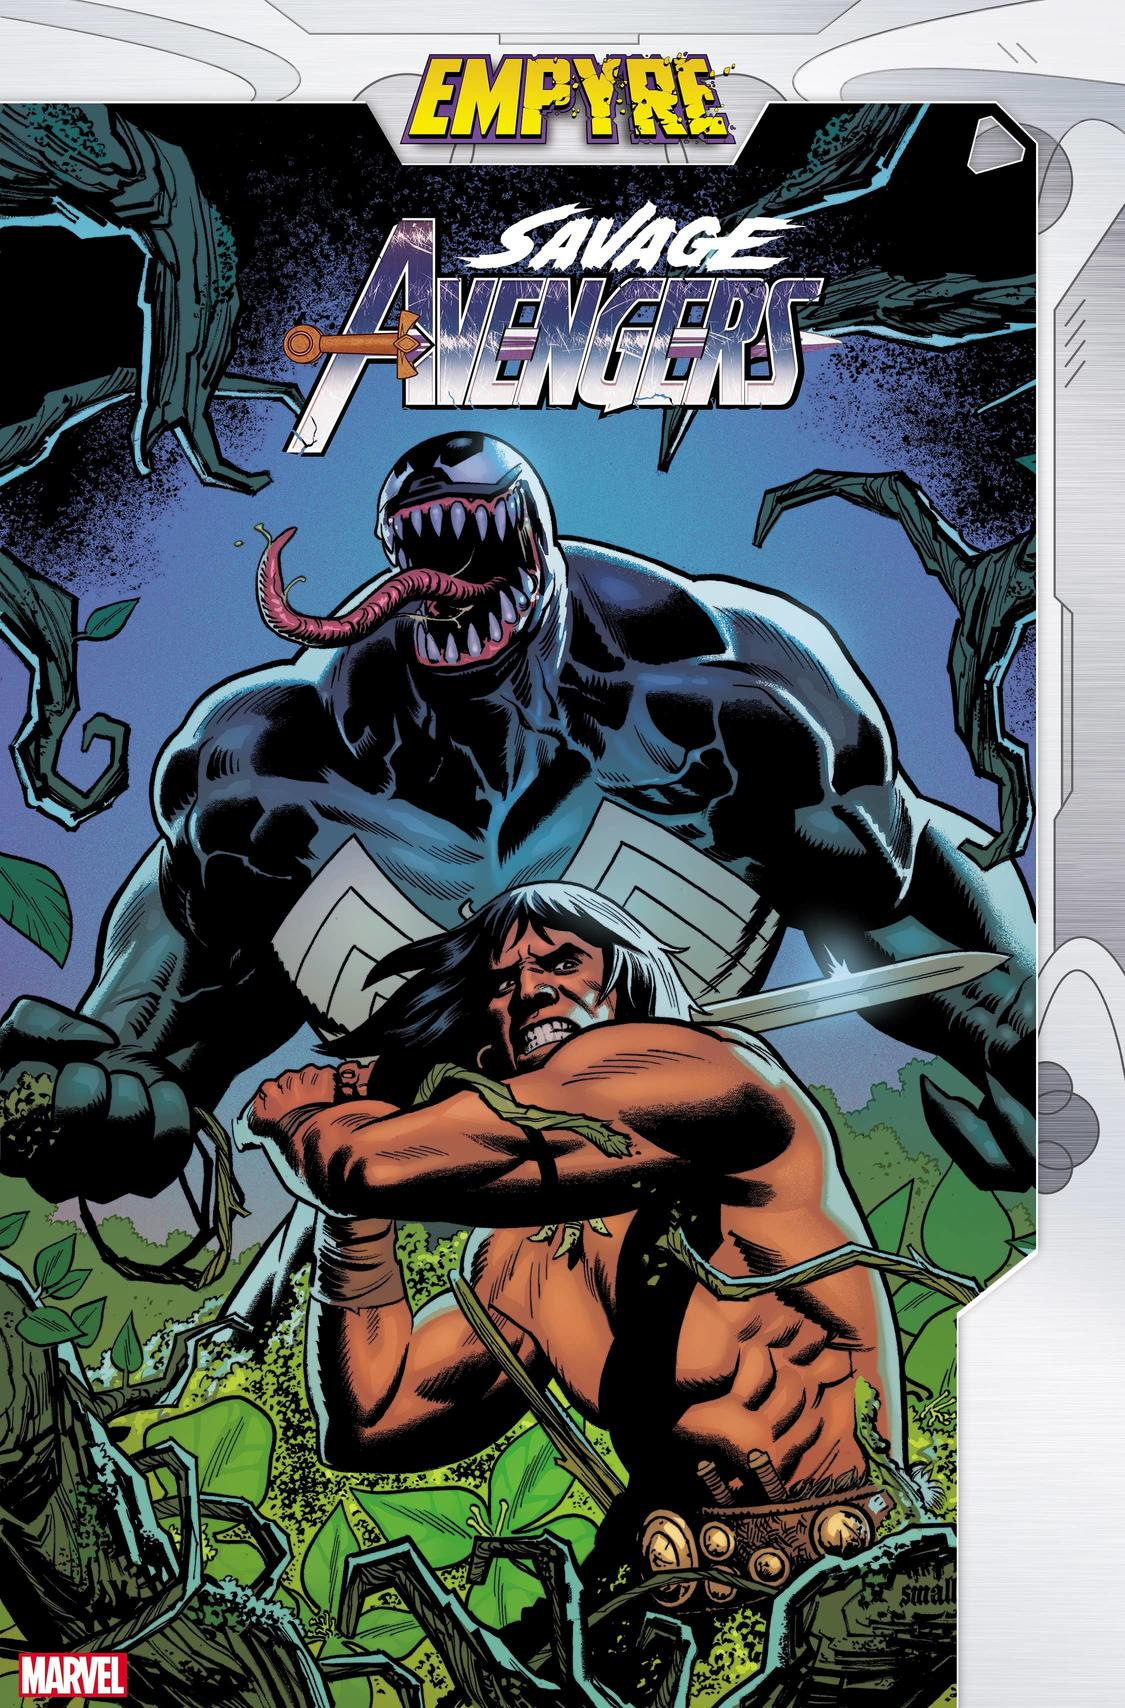 EMPYRE: SAVAGE AVENGERS #1 Written by GERRY DUGGAN with Art and cover by GREG SMALLWOOD